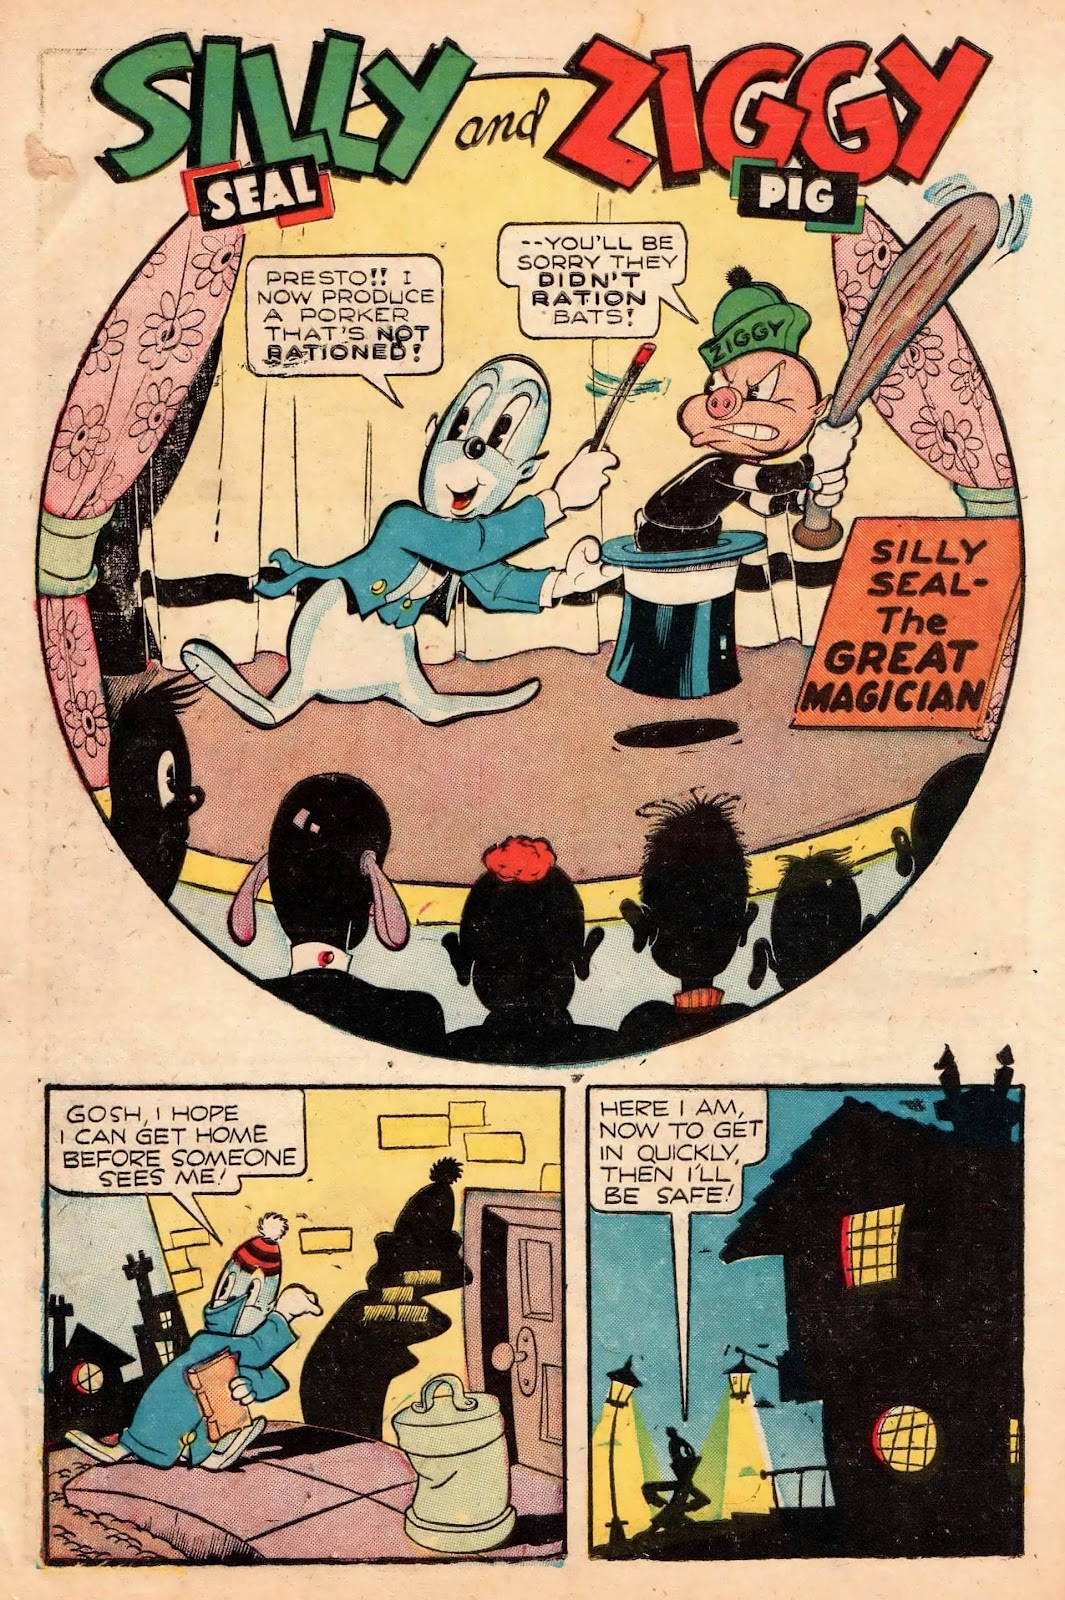 Ziggy Pig-Silly Seal Comics (1944) issue 2 - Page 10